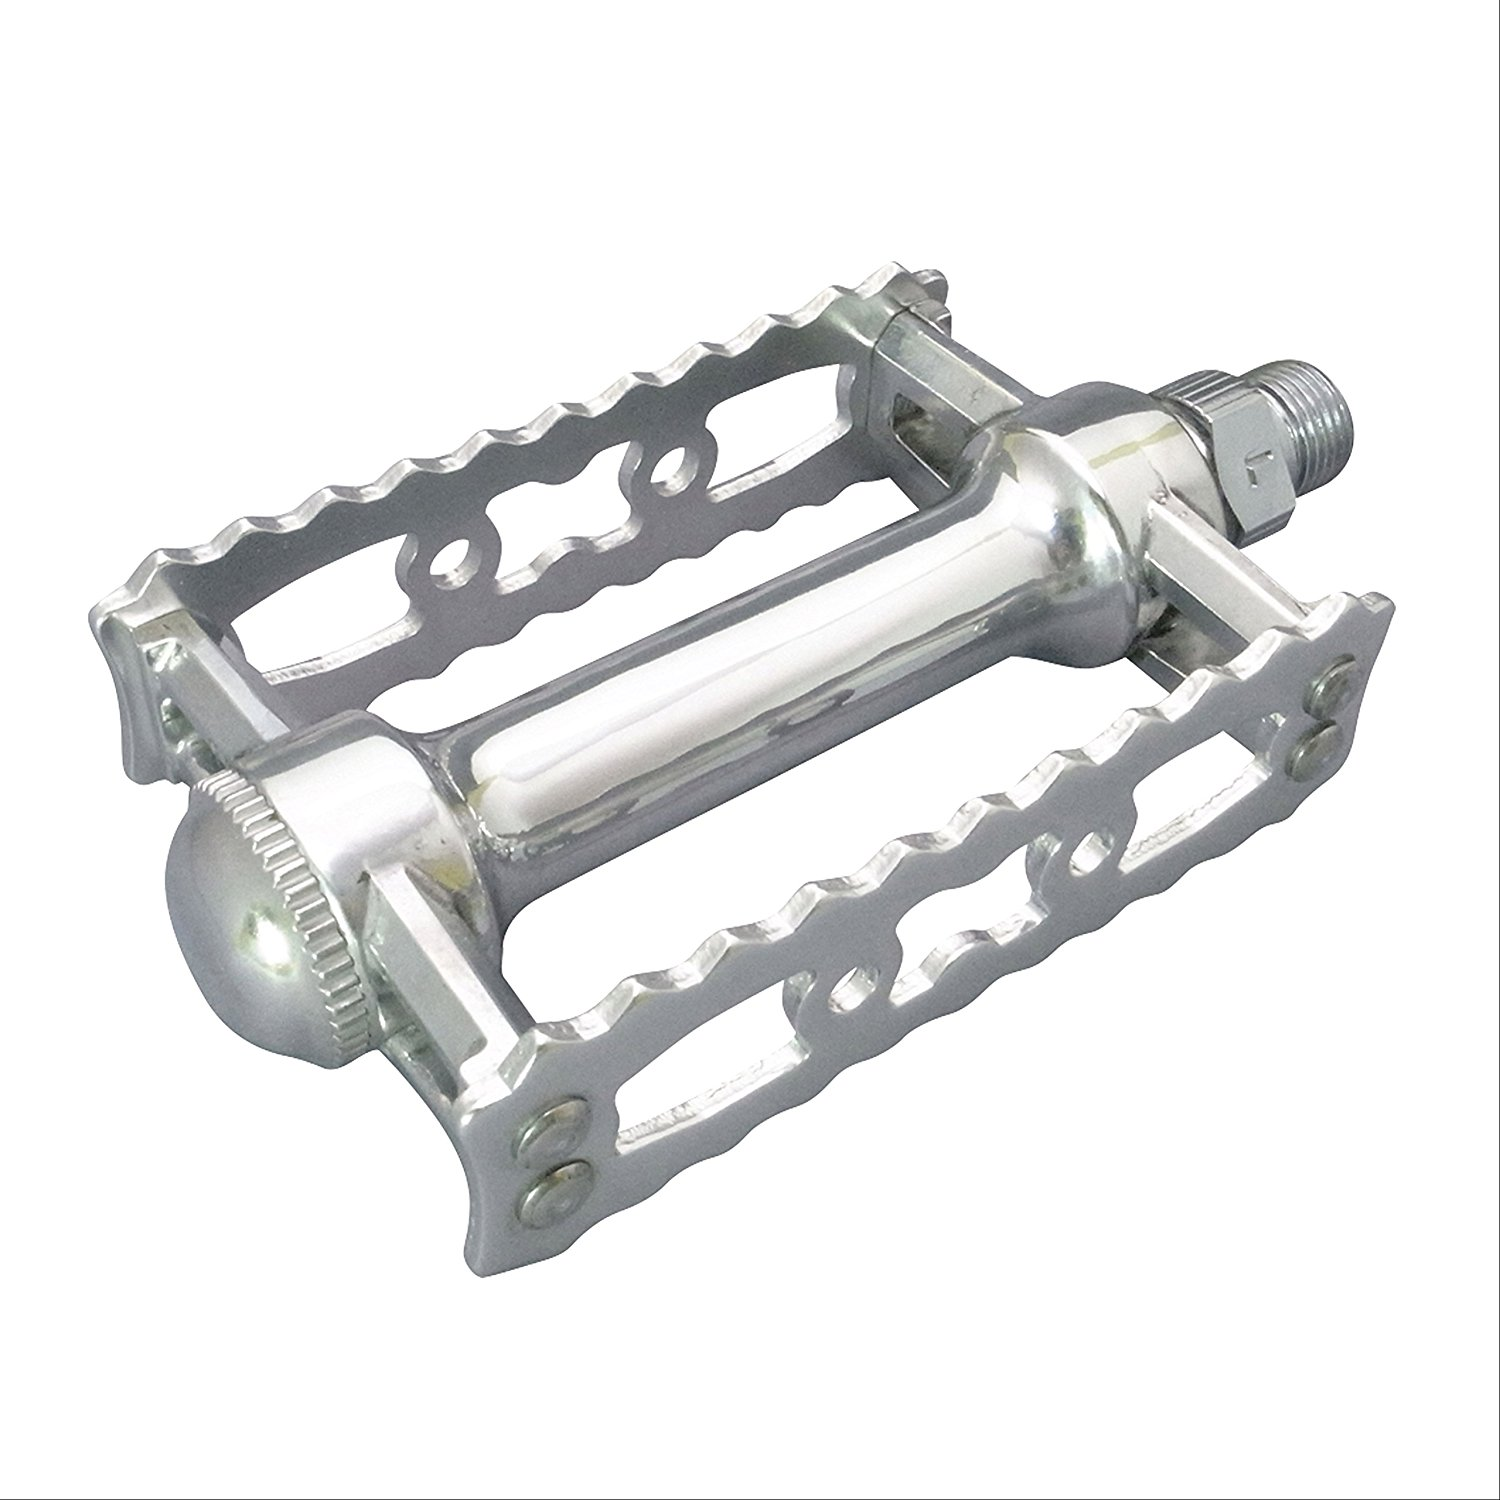 Brand New Sylvan Touring Pedal Double Sided, High-quality